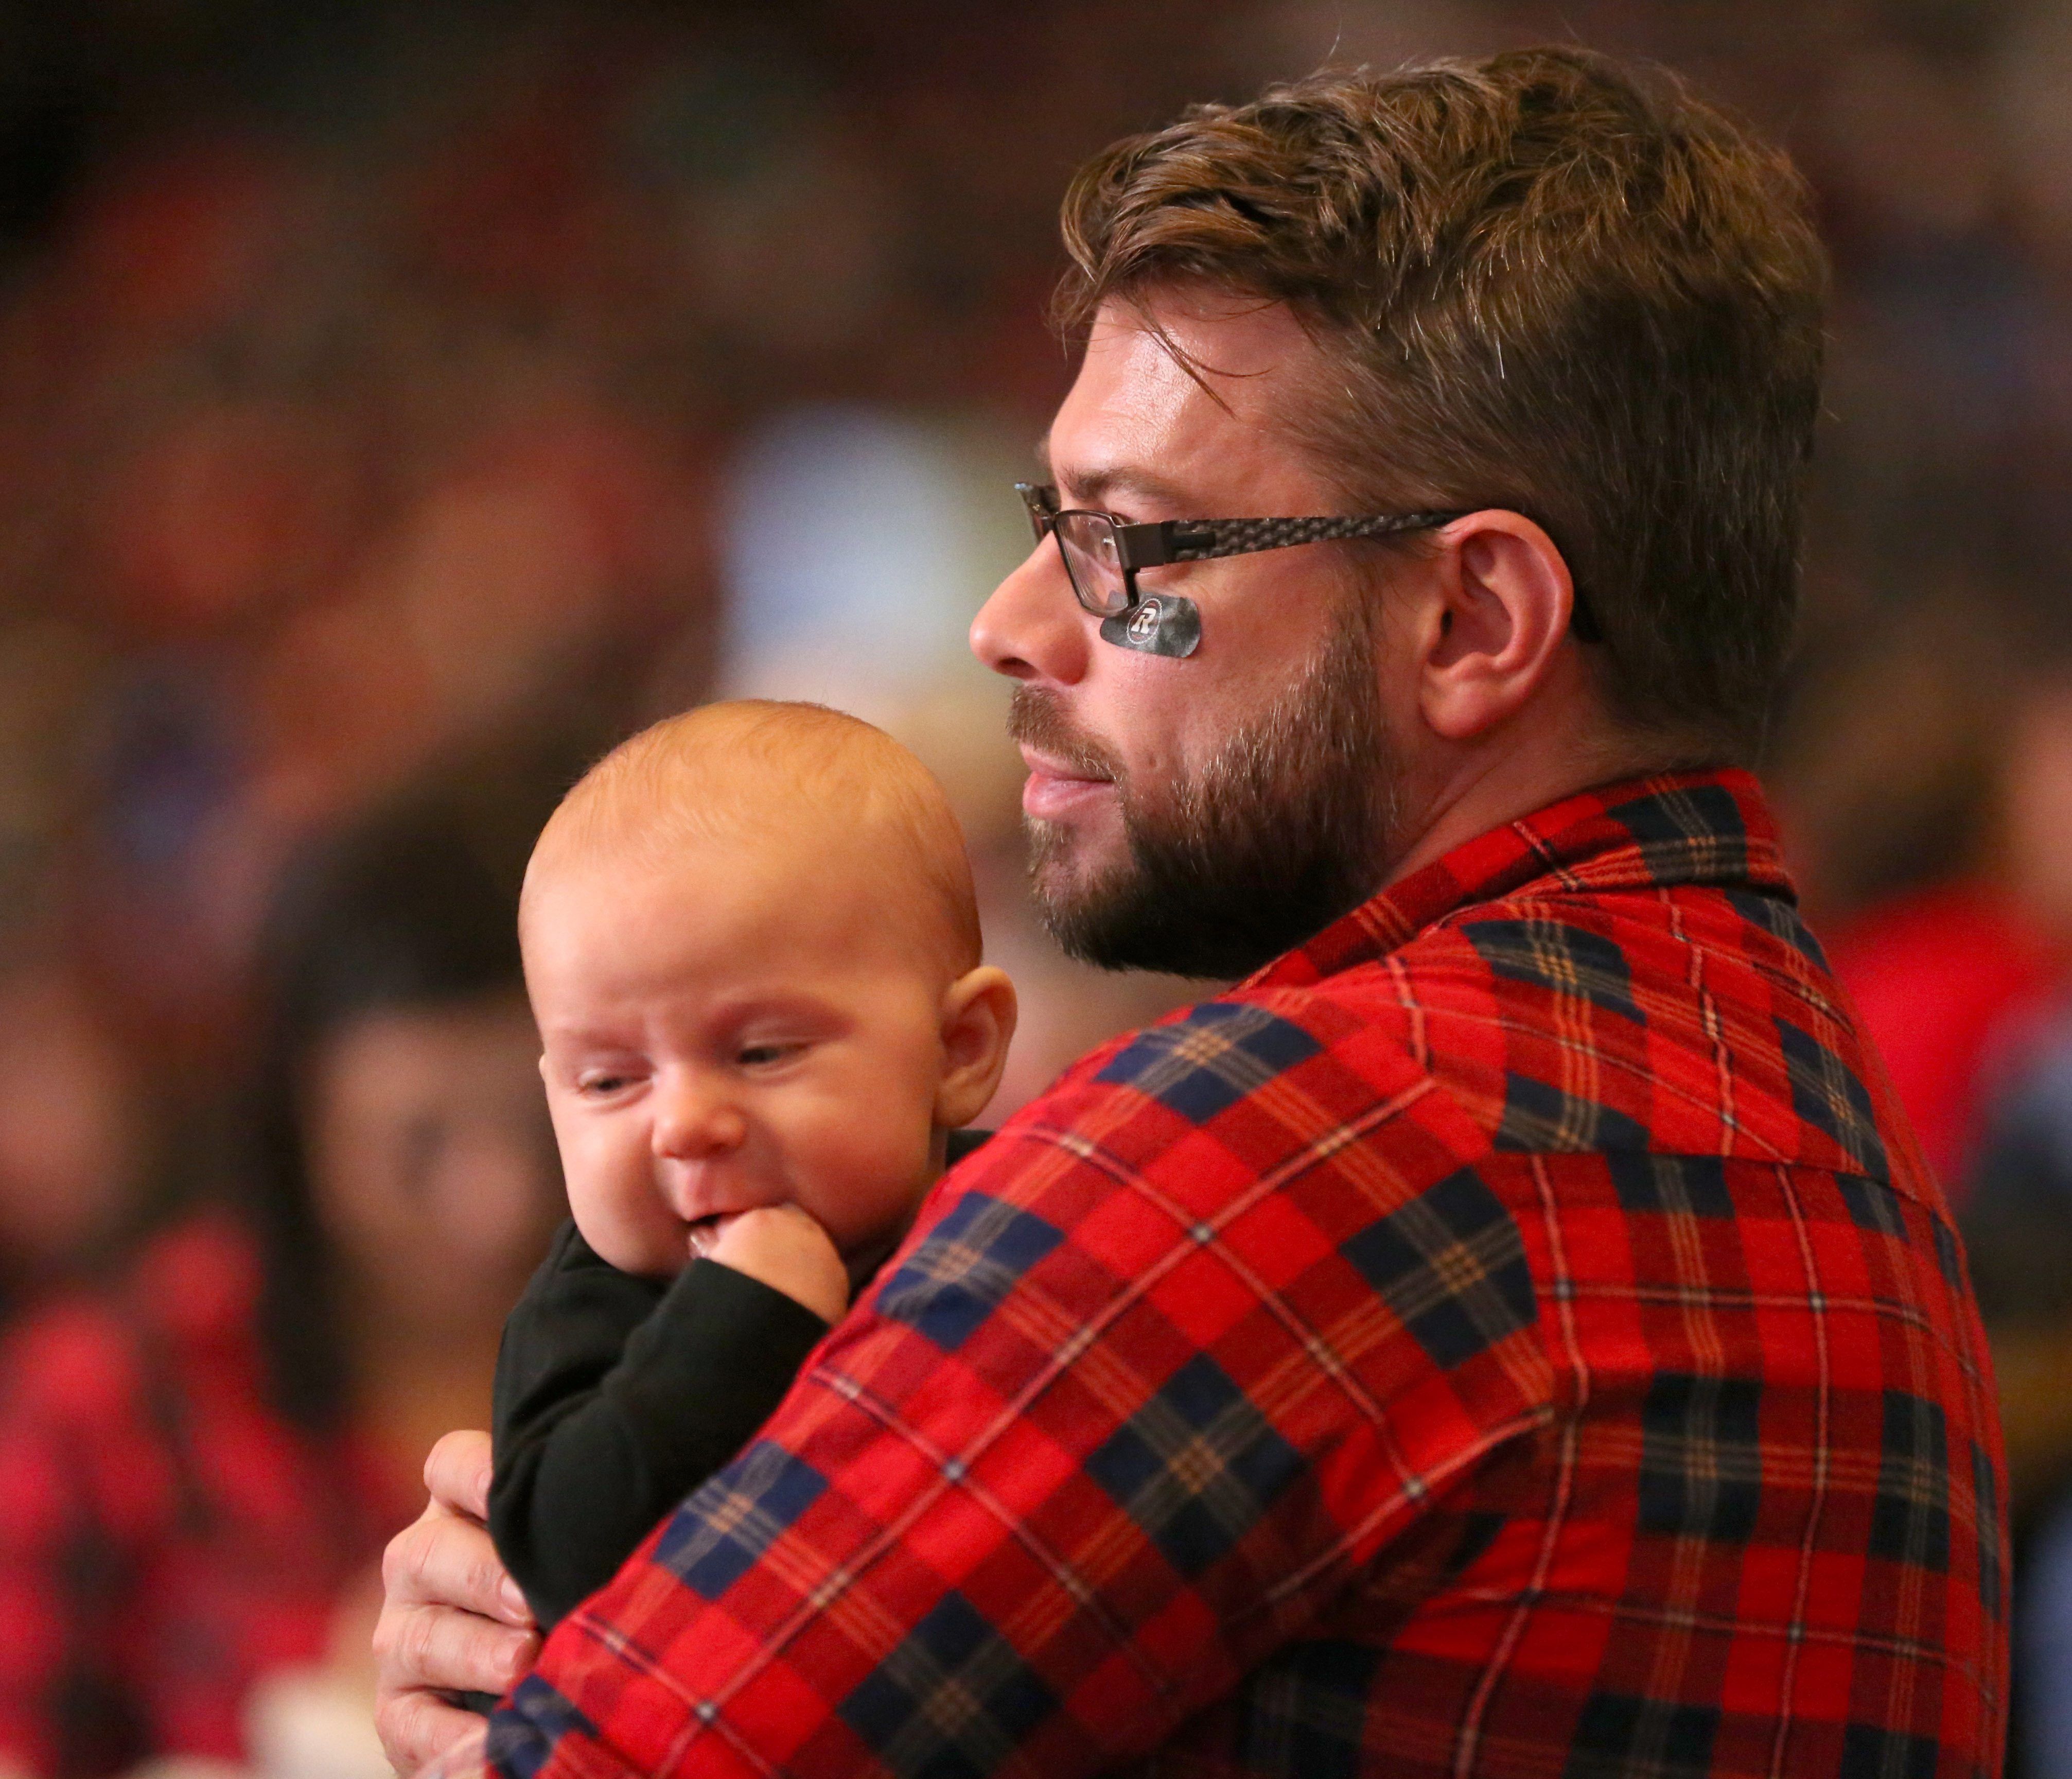 Mike Rafter and his son Milo, three months, watch the game. Photo by Jana Chytilova, OTTAWA magazine.